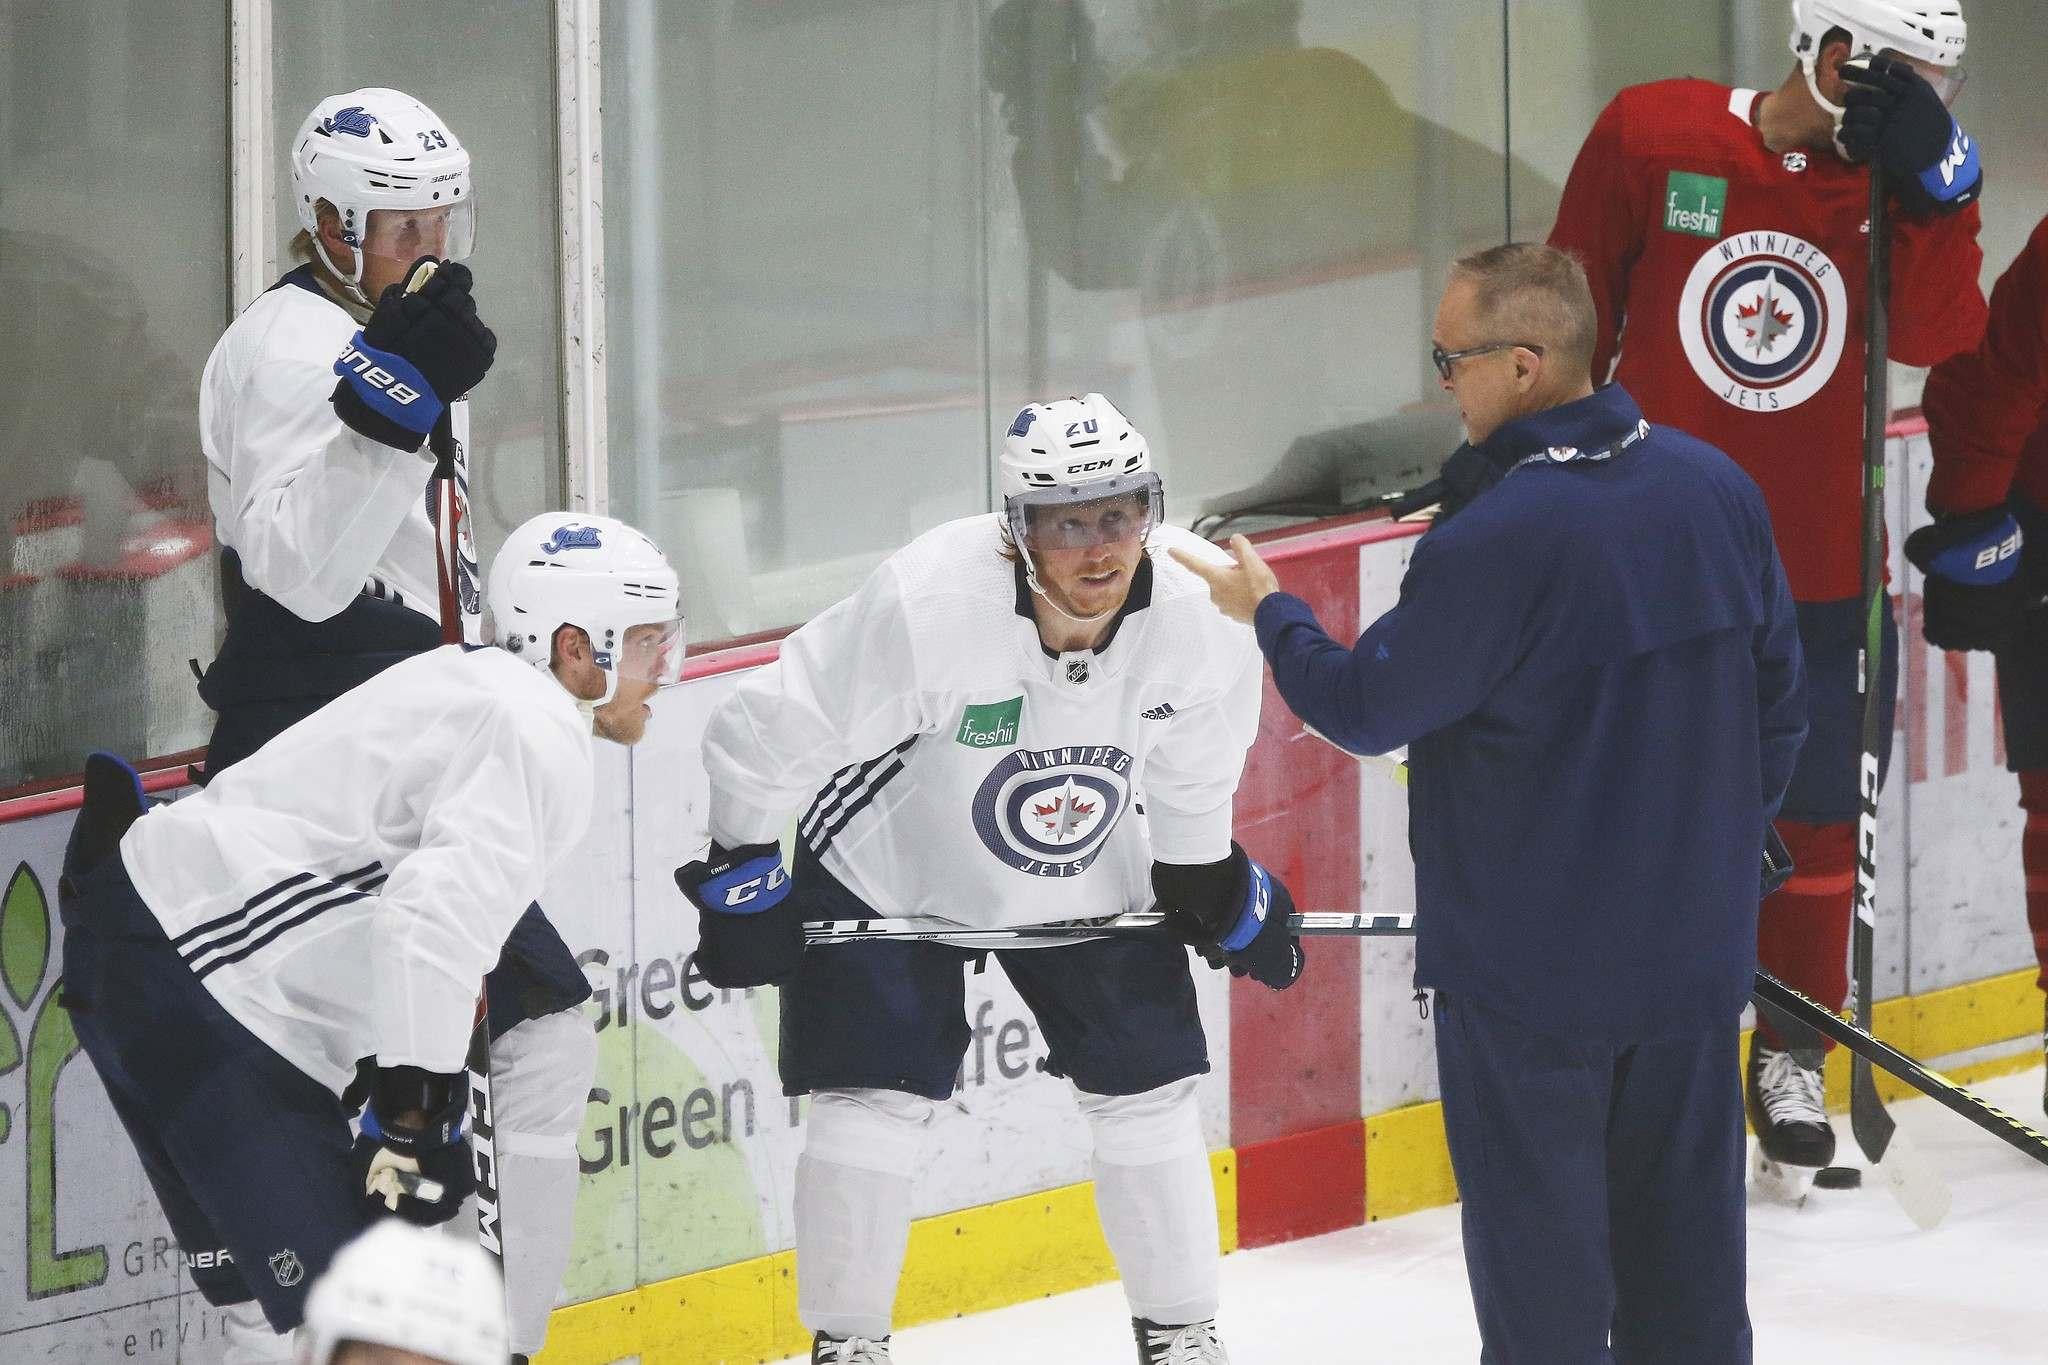 Patrik Laine (from left), Nikolaj Ehlers are returning, as is coach Paul Maurice, but Cody Eakin walked away in free agency. (John Woods / The Canadian Press files)